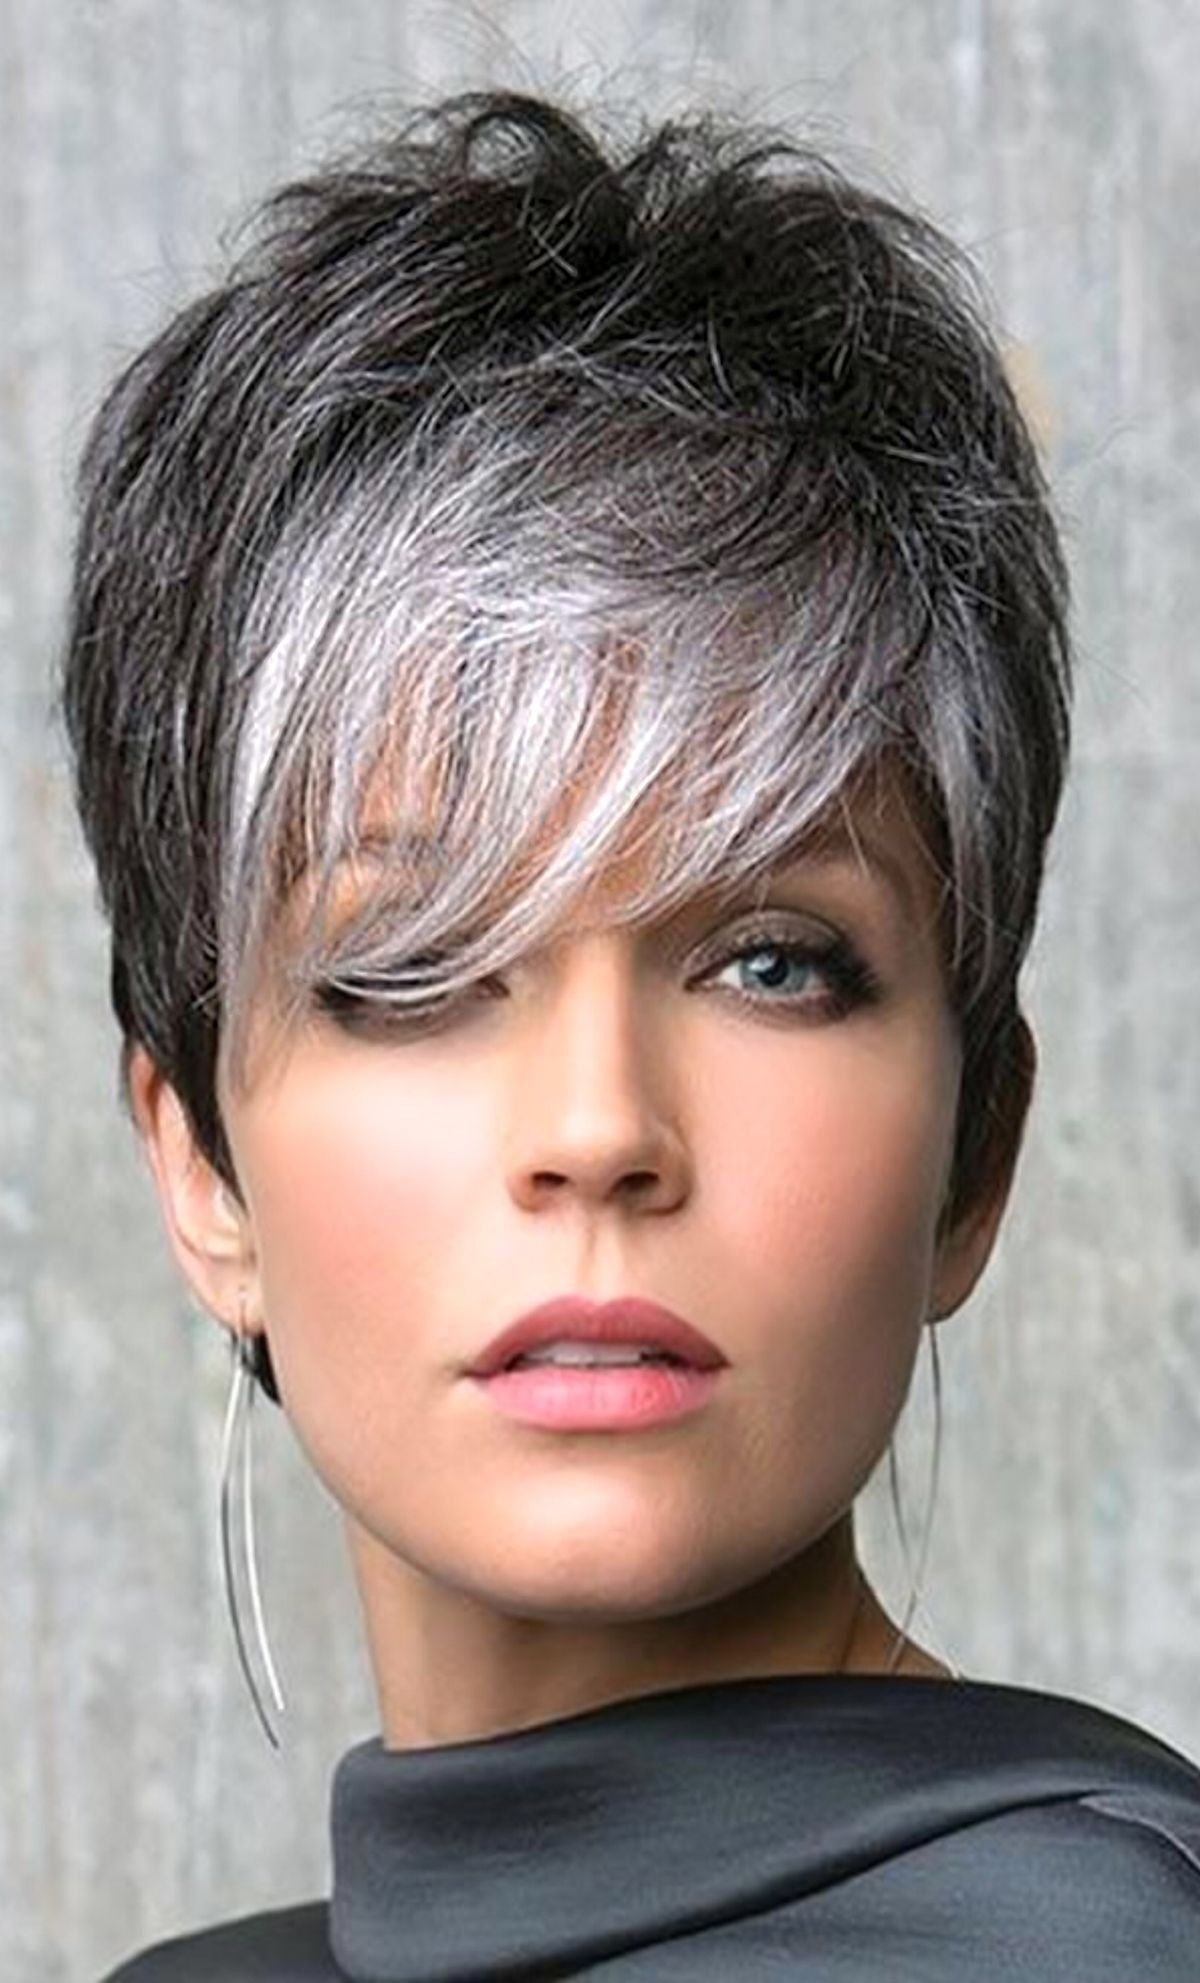 salt pepper hair styles salt and pepper hair styles fo silver hair 9263